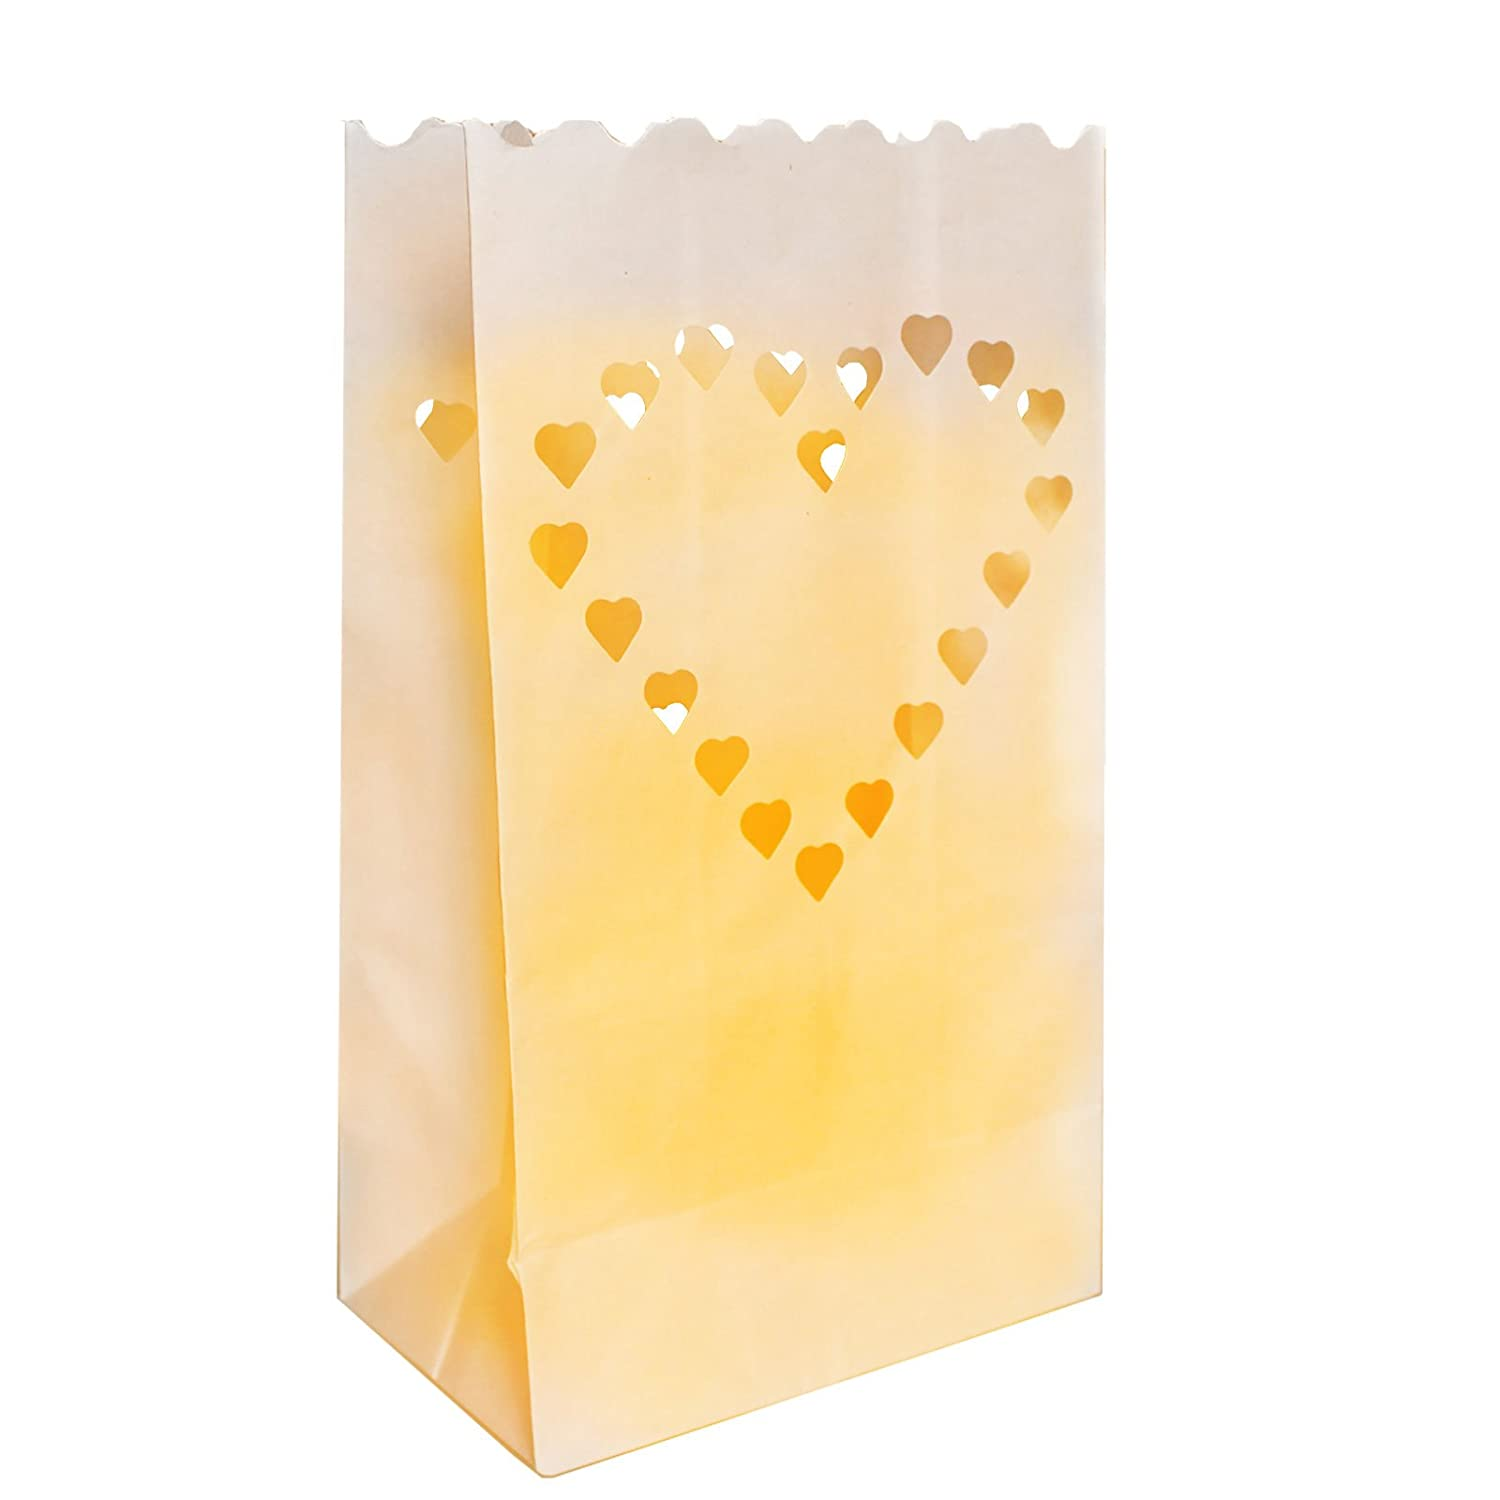 50 Pack Heart Design White Paper Decorative Lanterns by Kurtzy - Centrepiece Craft Decorations for Weddings and Birthdays - Flame Resistant - Large Lanterns - Use with Tea Lights (Regular or LED) CB-505